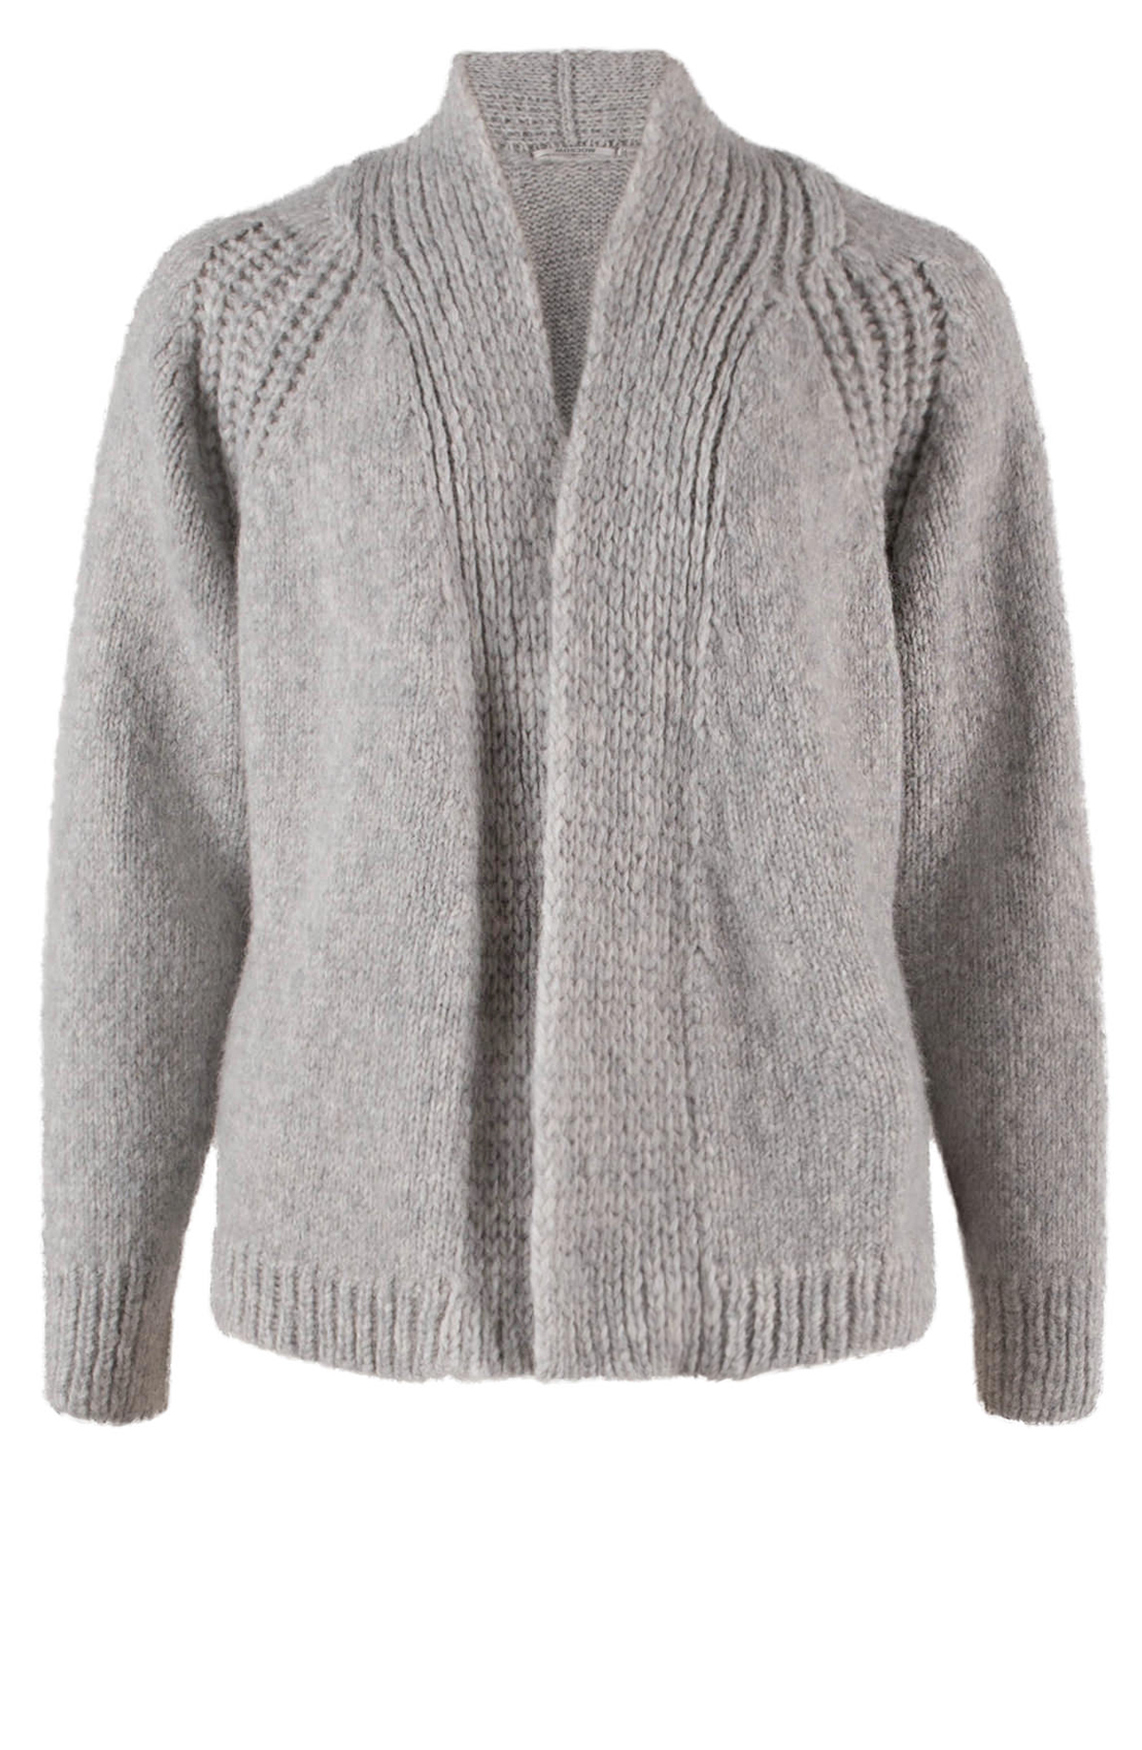 Moscow Dames Short knitted cardigan Grijs